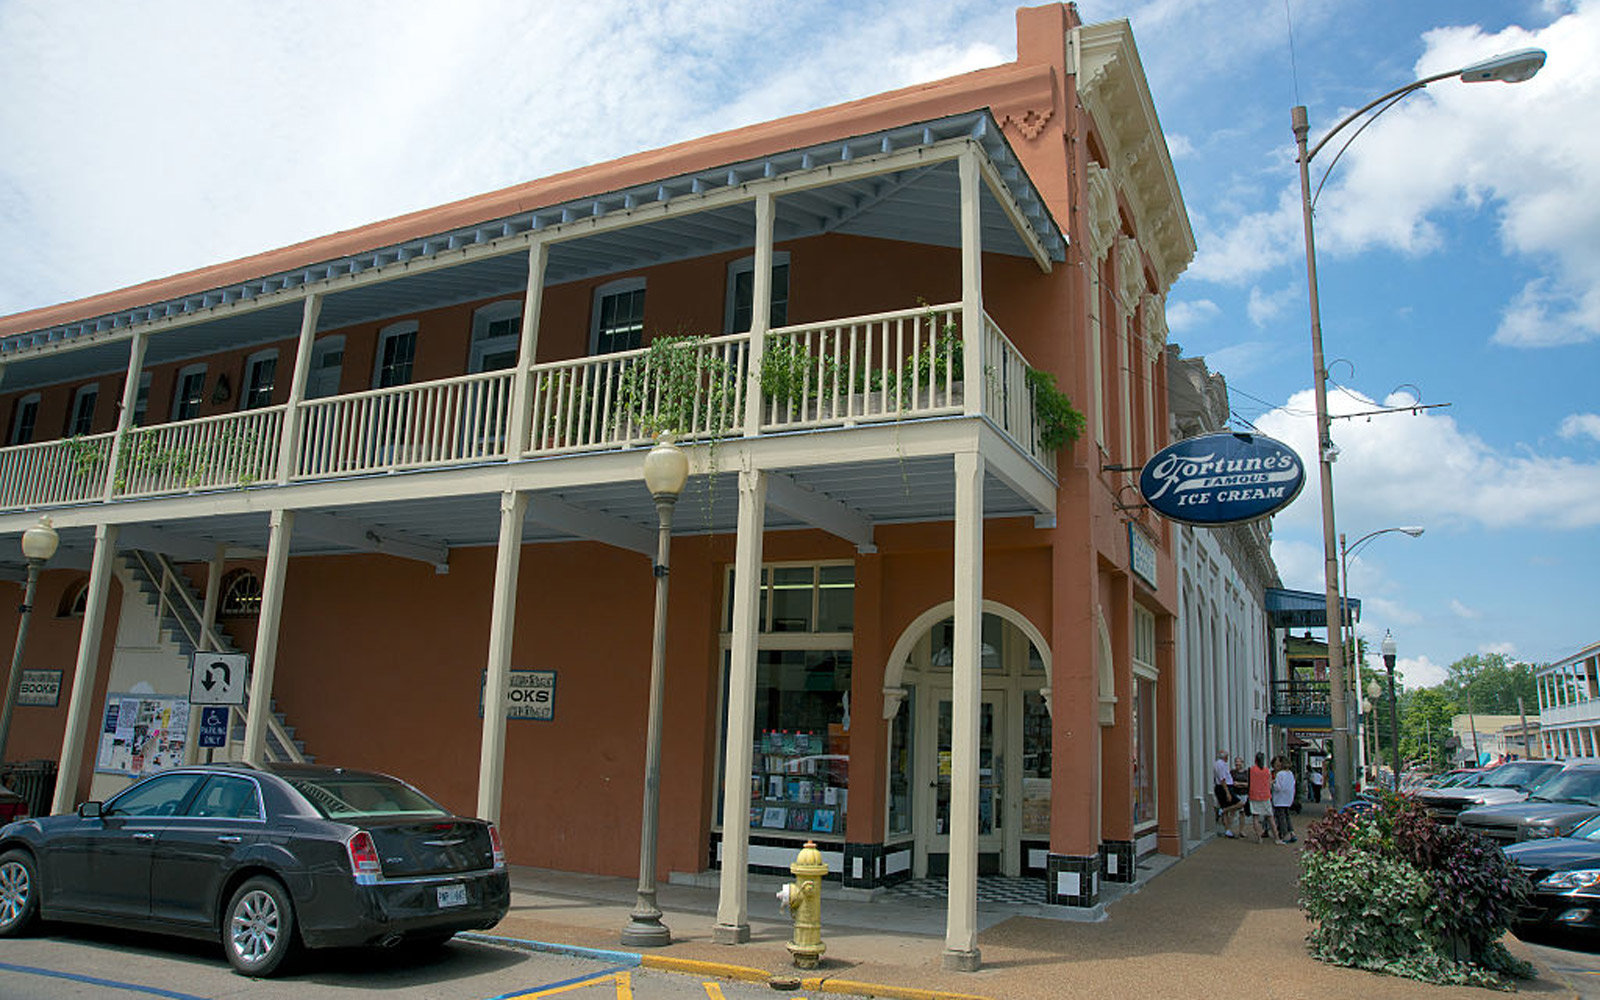 Square Books Bookstore in Oxford Mississippi